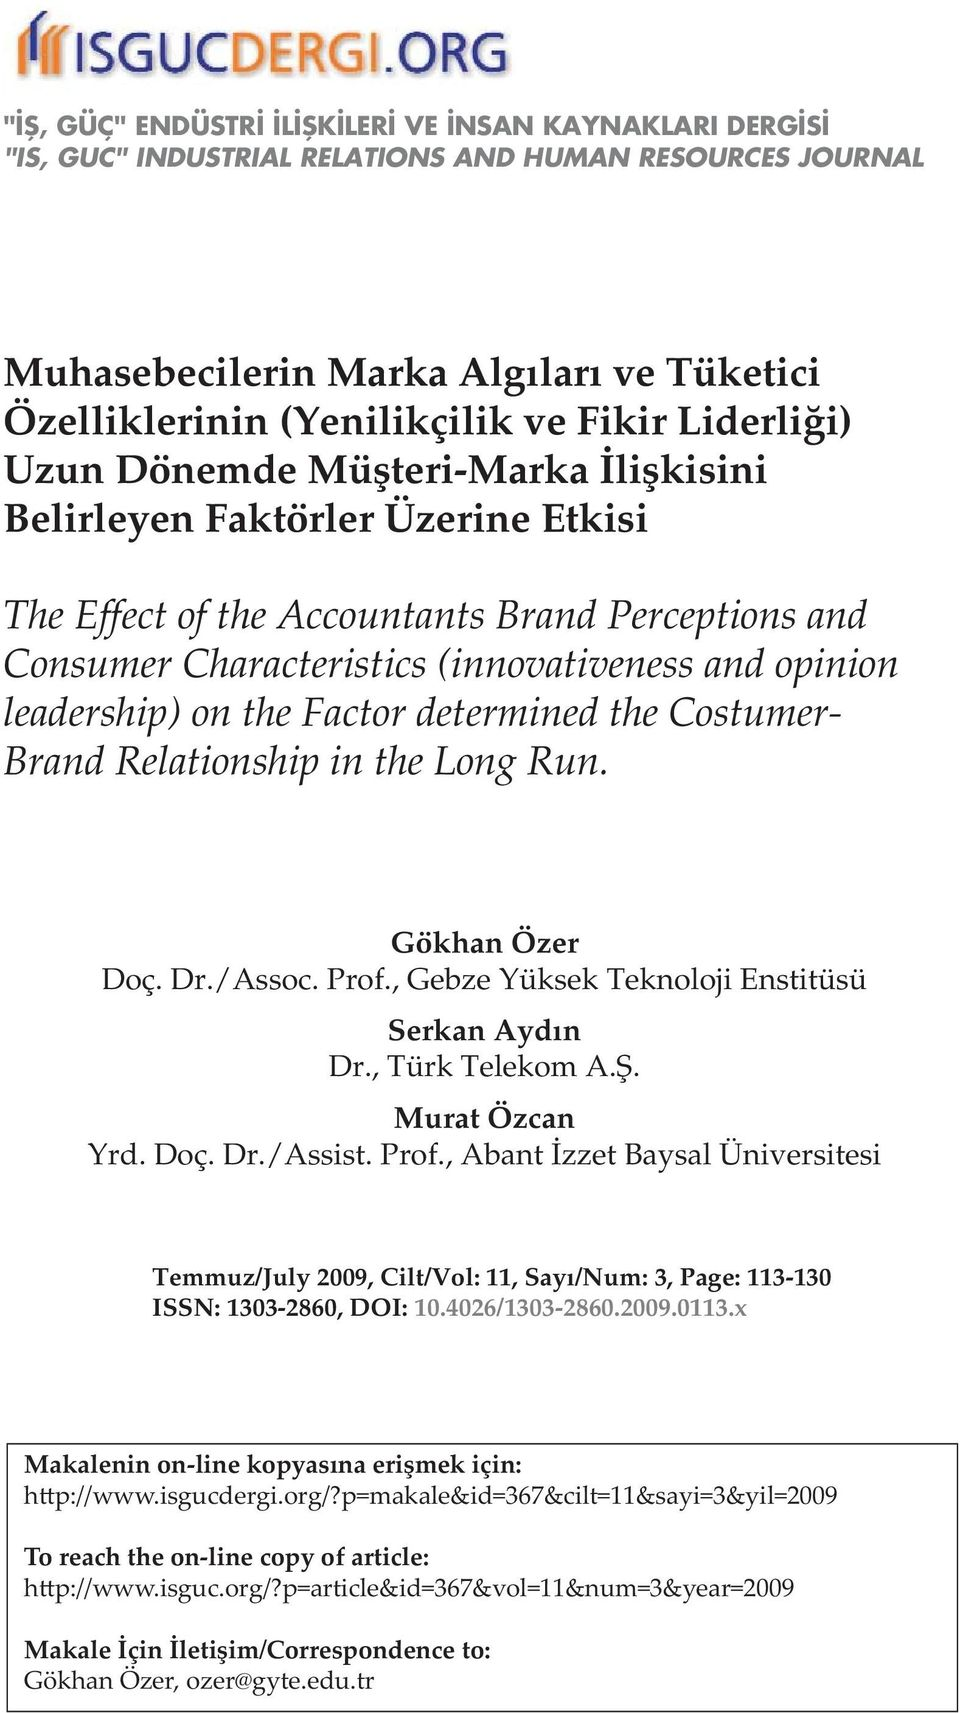 leadership) on the Factor determined the Costumer- Brand Relationship in the Long Run. Gökhan Özer Doç. Dr./Assoc. Prof., Gebze Yüksek Teknoloji Enstitüsü Serkan Aydın Dr., Türk Telekom A.Ş.